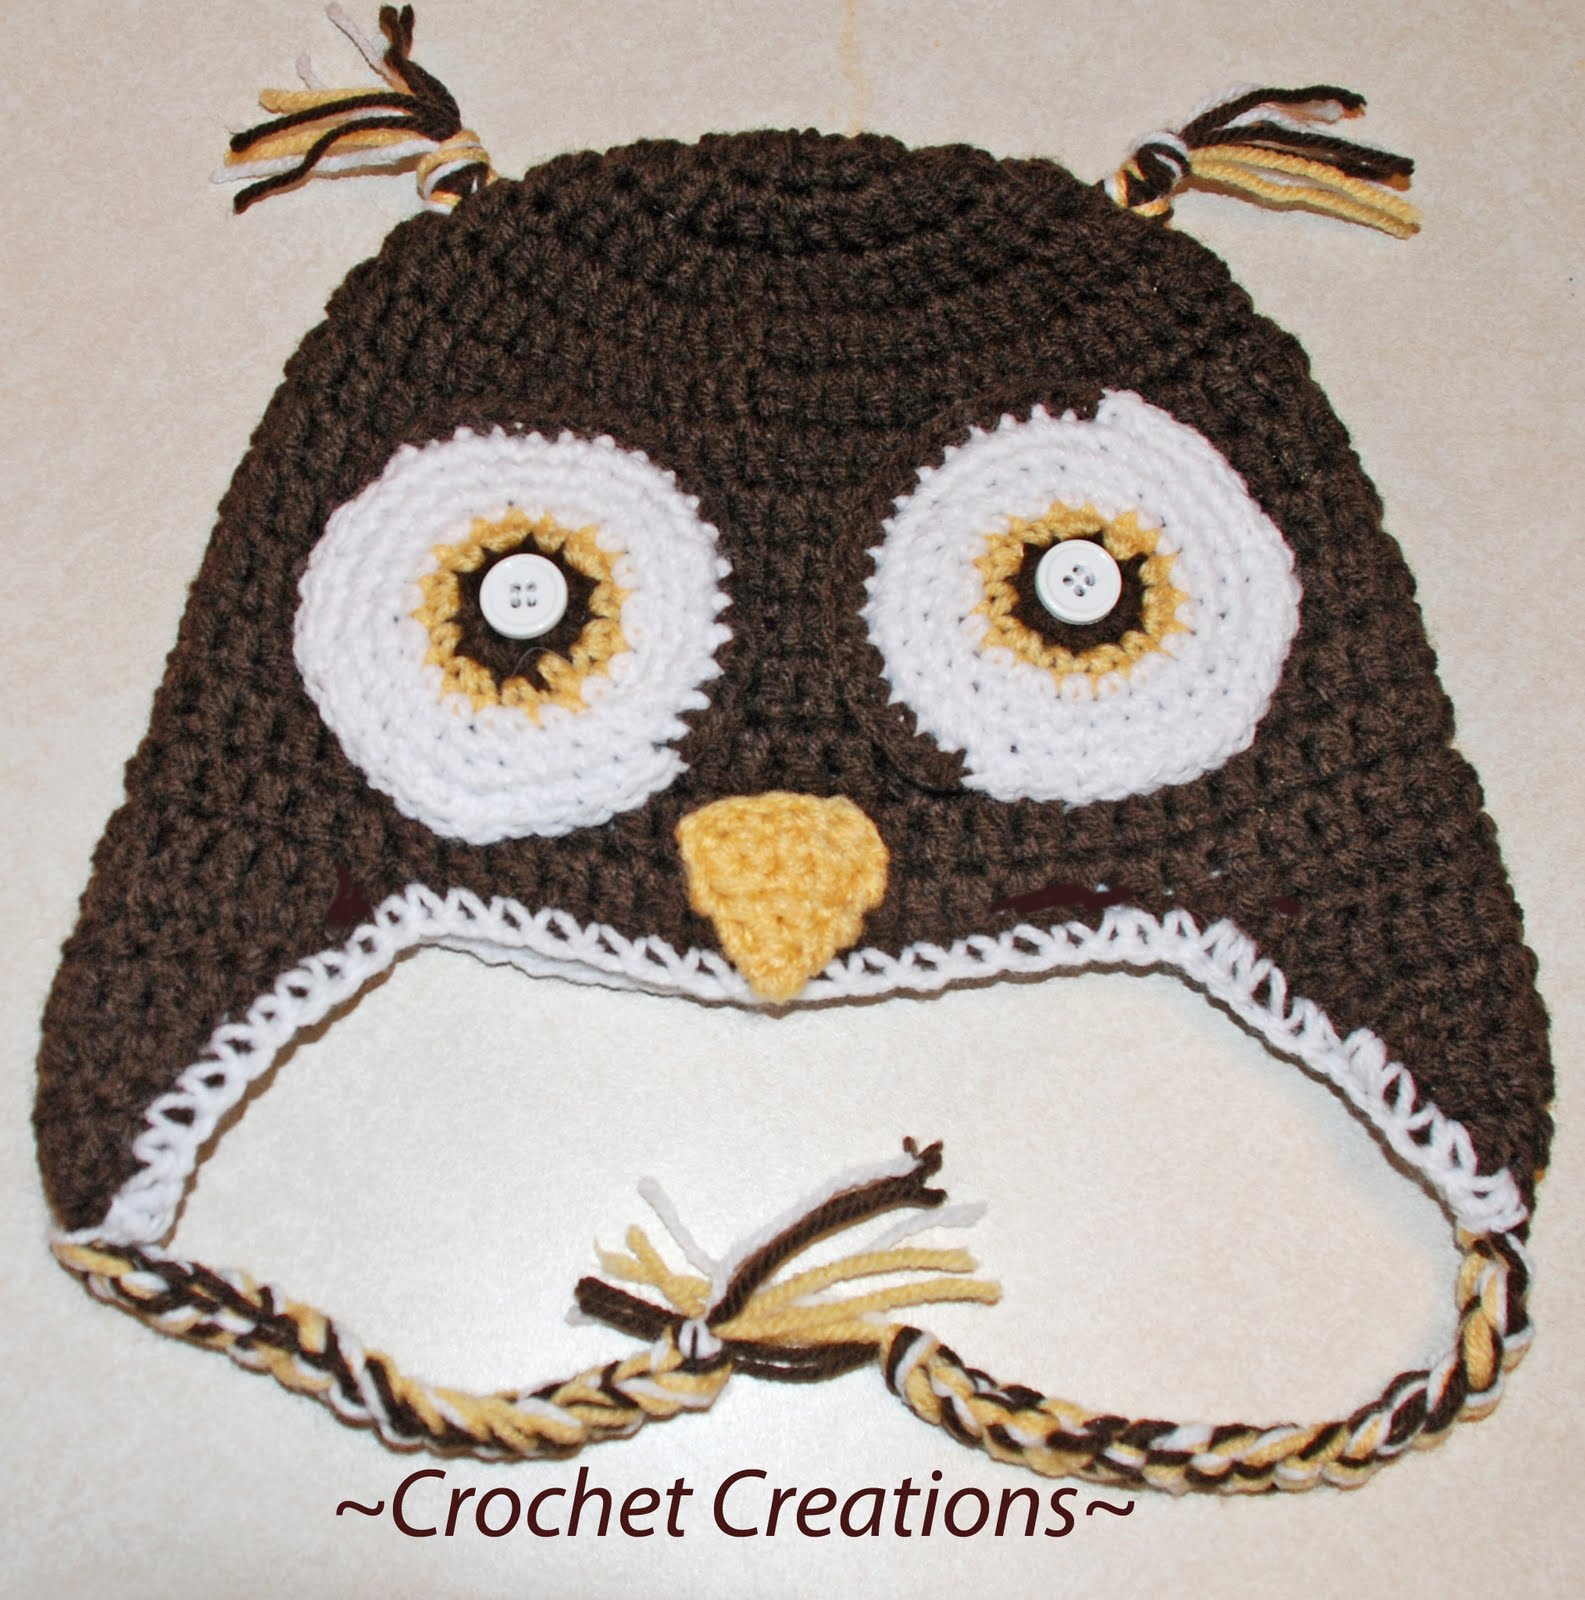 Crochet Pattern For Newborn Owl Hat : Free Crochet Owl Pattern submited images.